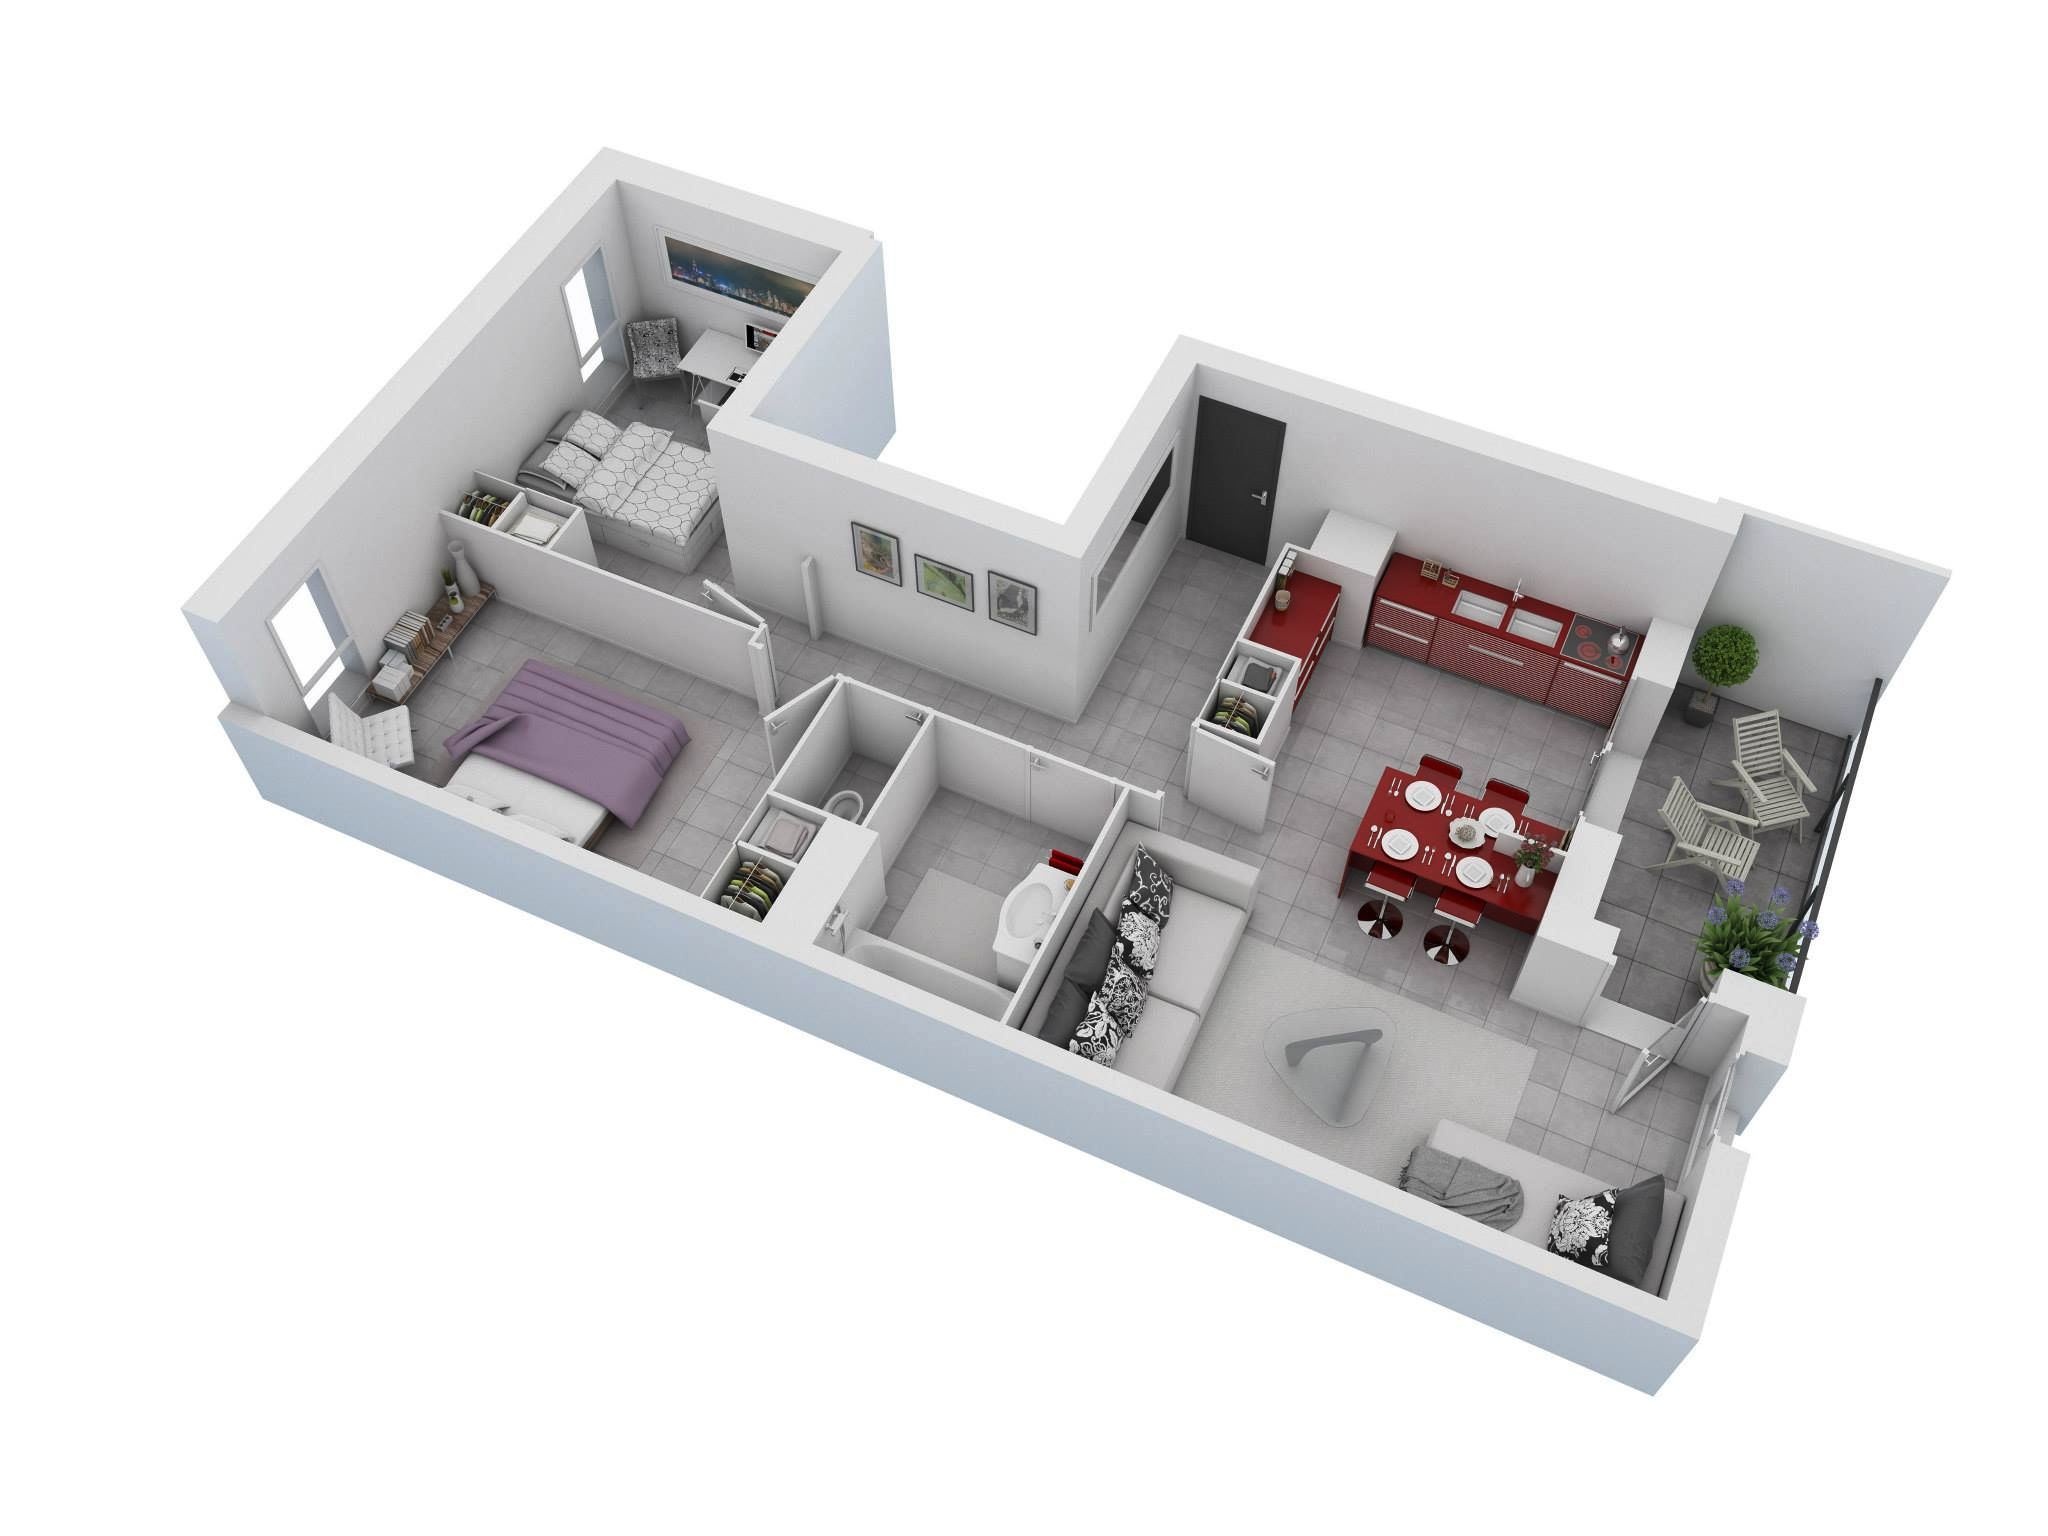 Floor Plans For Small Houses With 2 Bedrooms | 25 More 2 Bedroom 3d Floor Plans